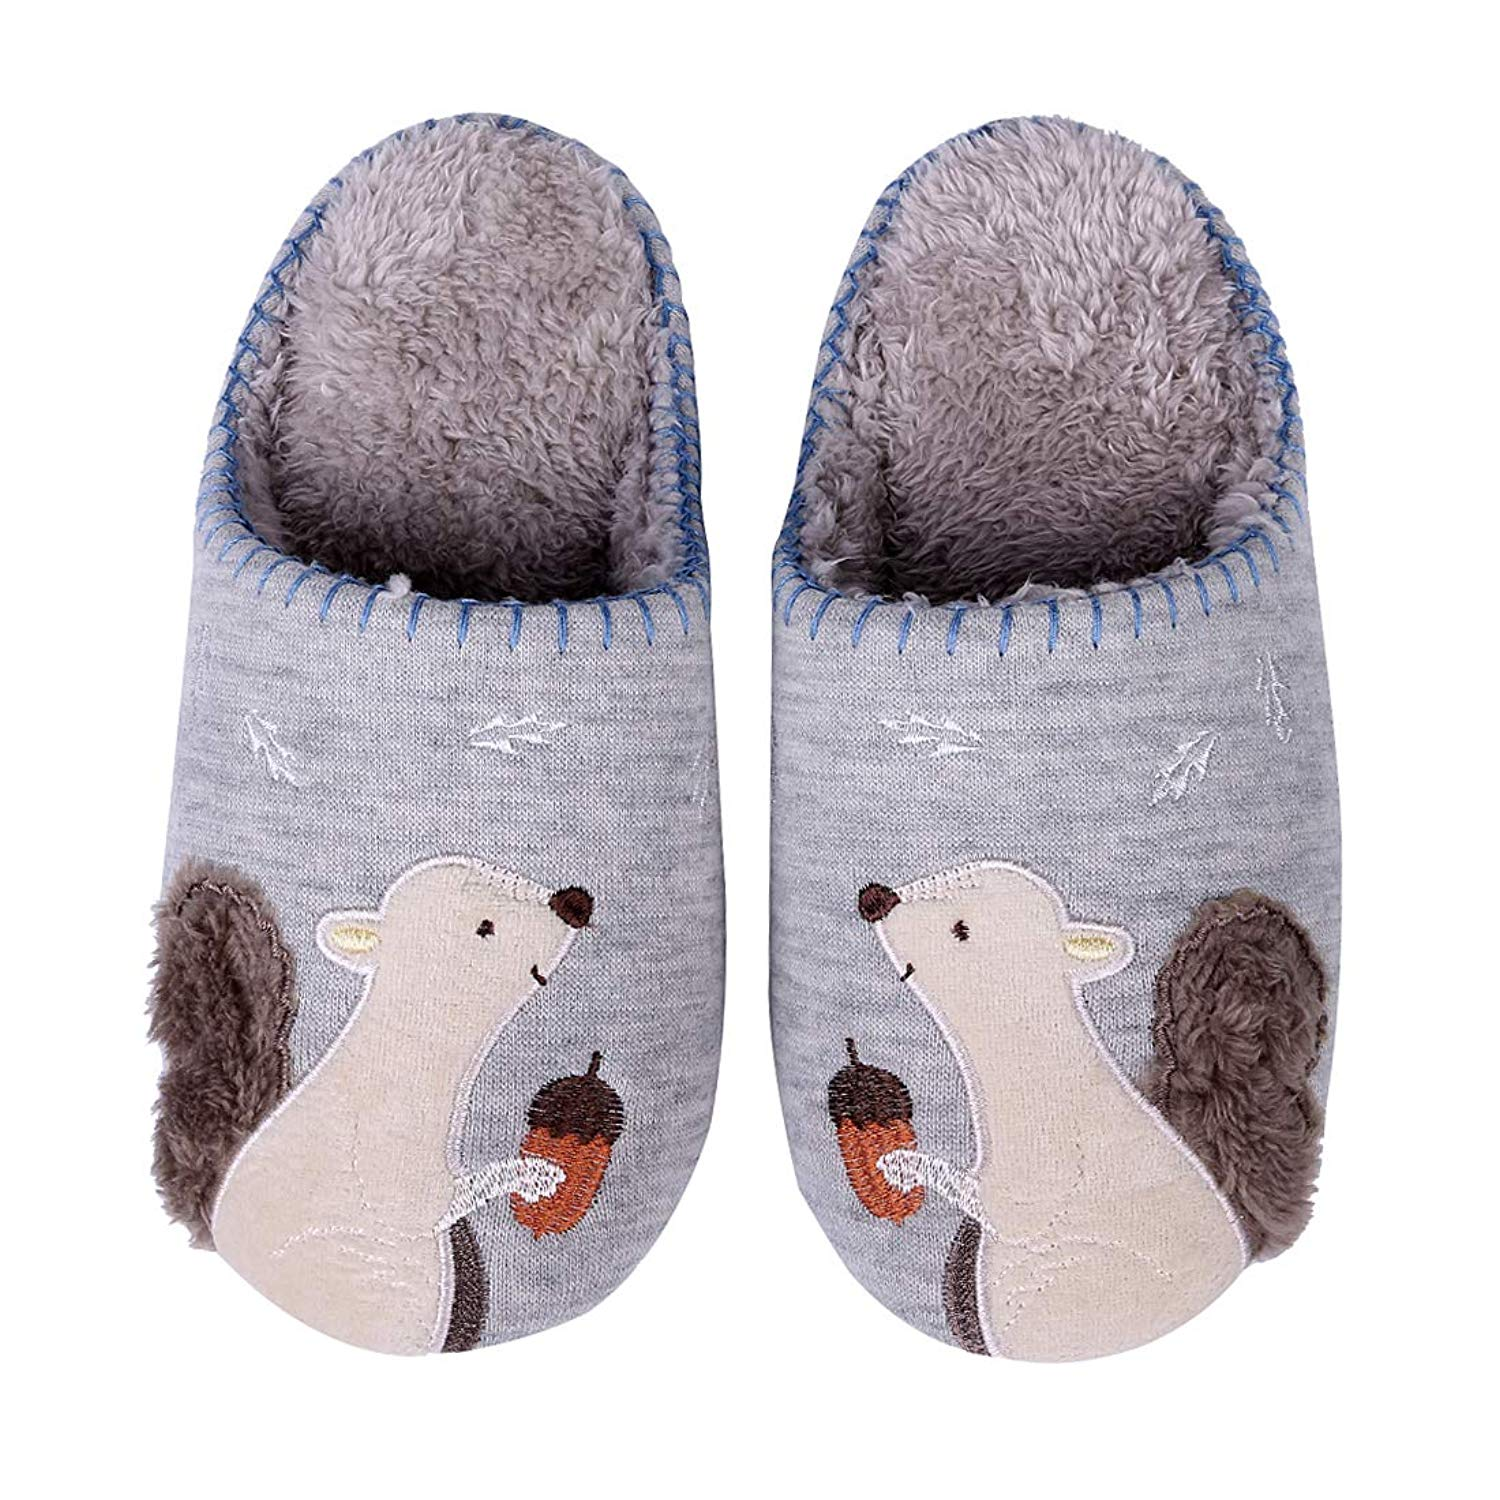 aa644742cd85 Get Quotations · Cute Animal House Slippers Hedgehog Dog Family Indoor  Slippers Waterproof Sole Fuzzy Bedroom Slippers for Kids